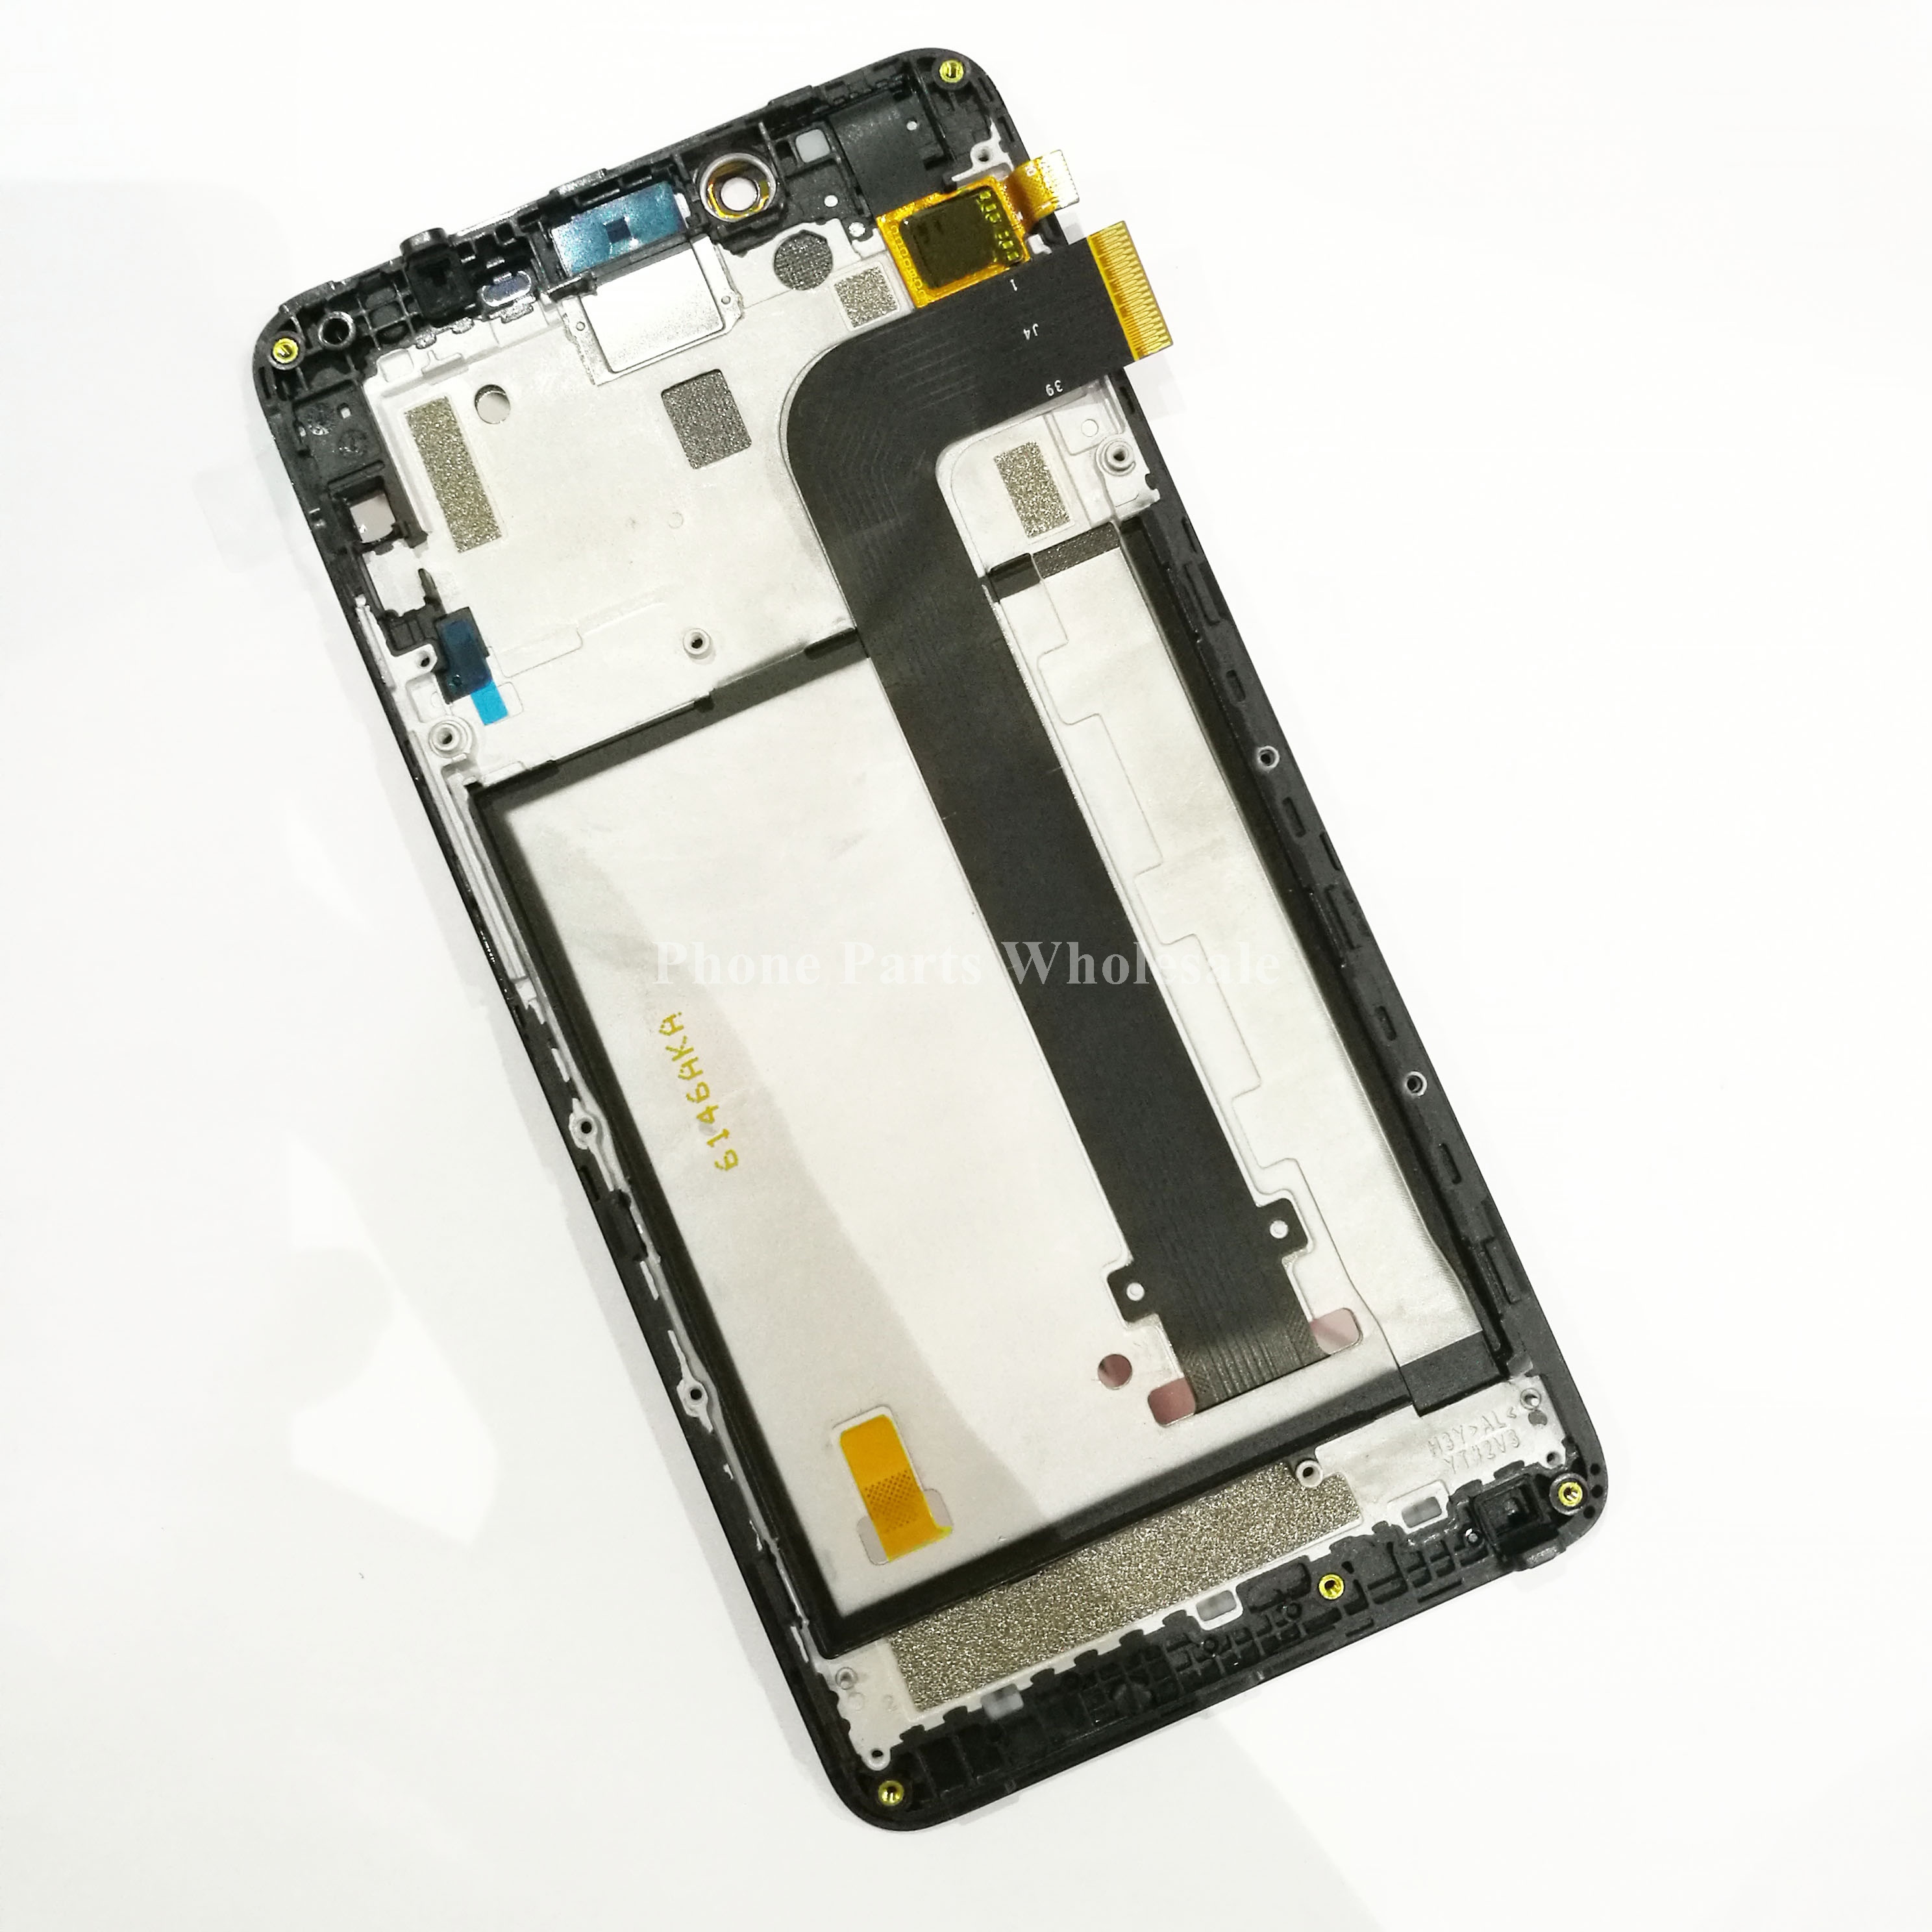 For Xiaomi Redmi Note 2 Original New LCD Display +Touch Screen Panel Digitizer +Bezel Frame Assembly Replacement Parts